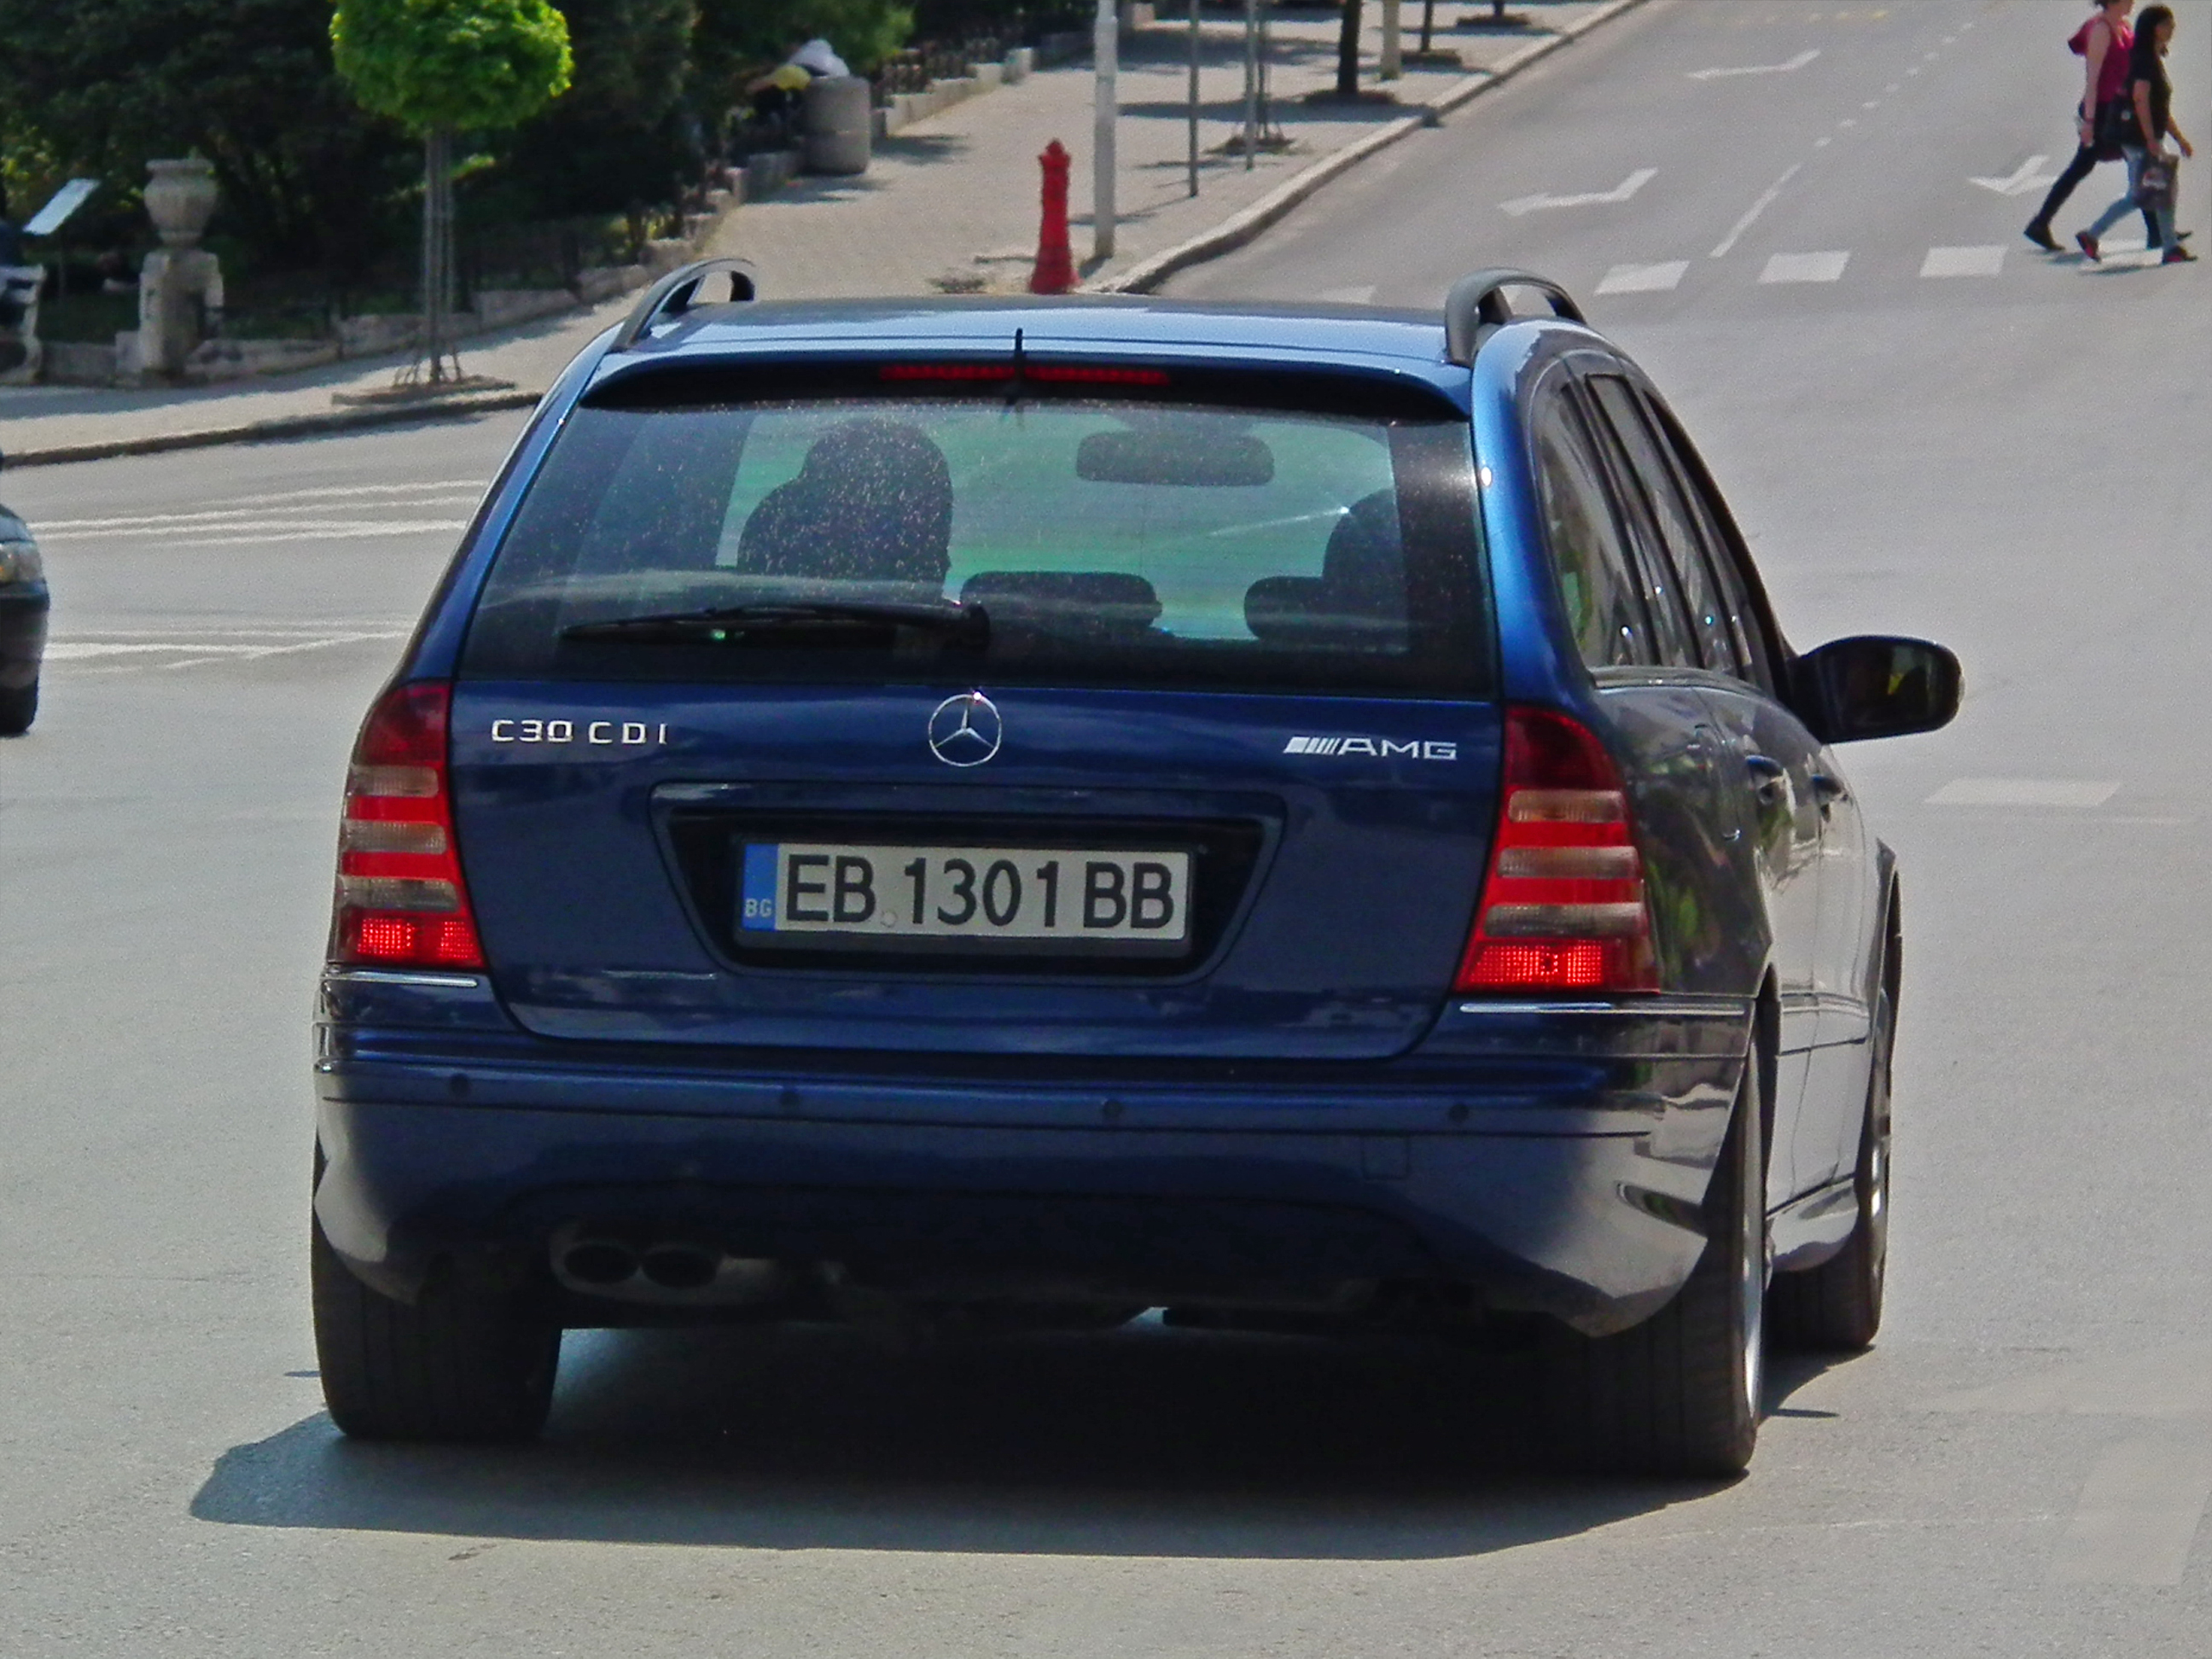 That Time Mercedes Made A 'C30 CDI AMG' With A Diesel Inline